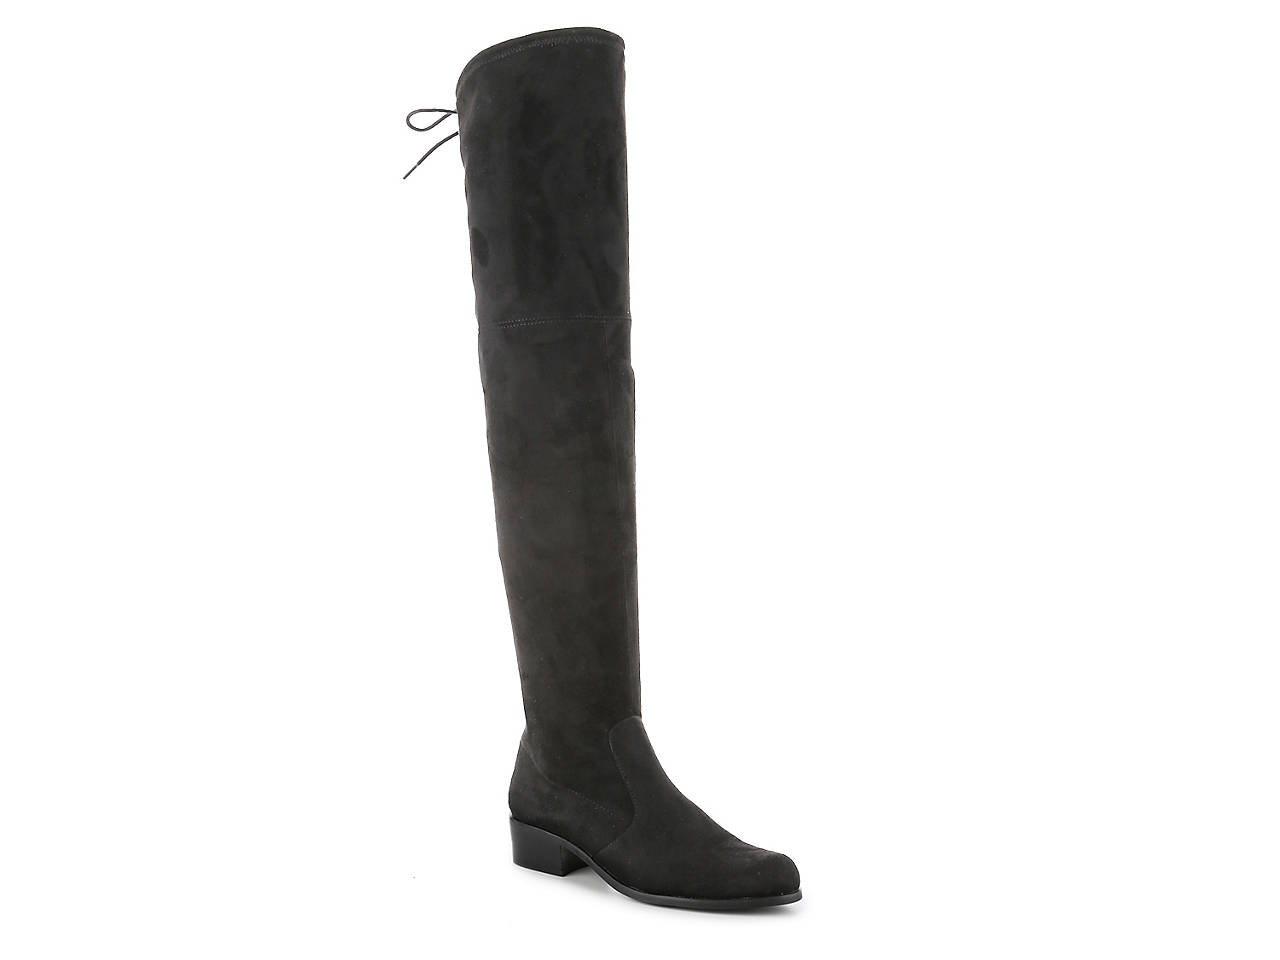 96502581e4d8 Charles by Charles David Gunter Over The Knee Boot Women s Shoes